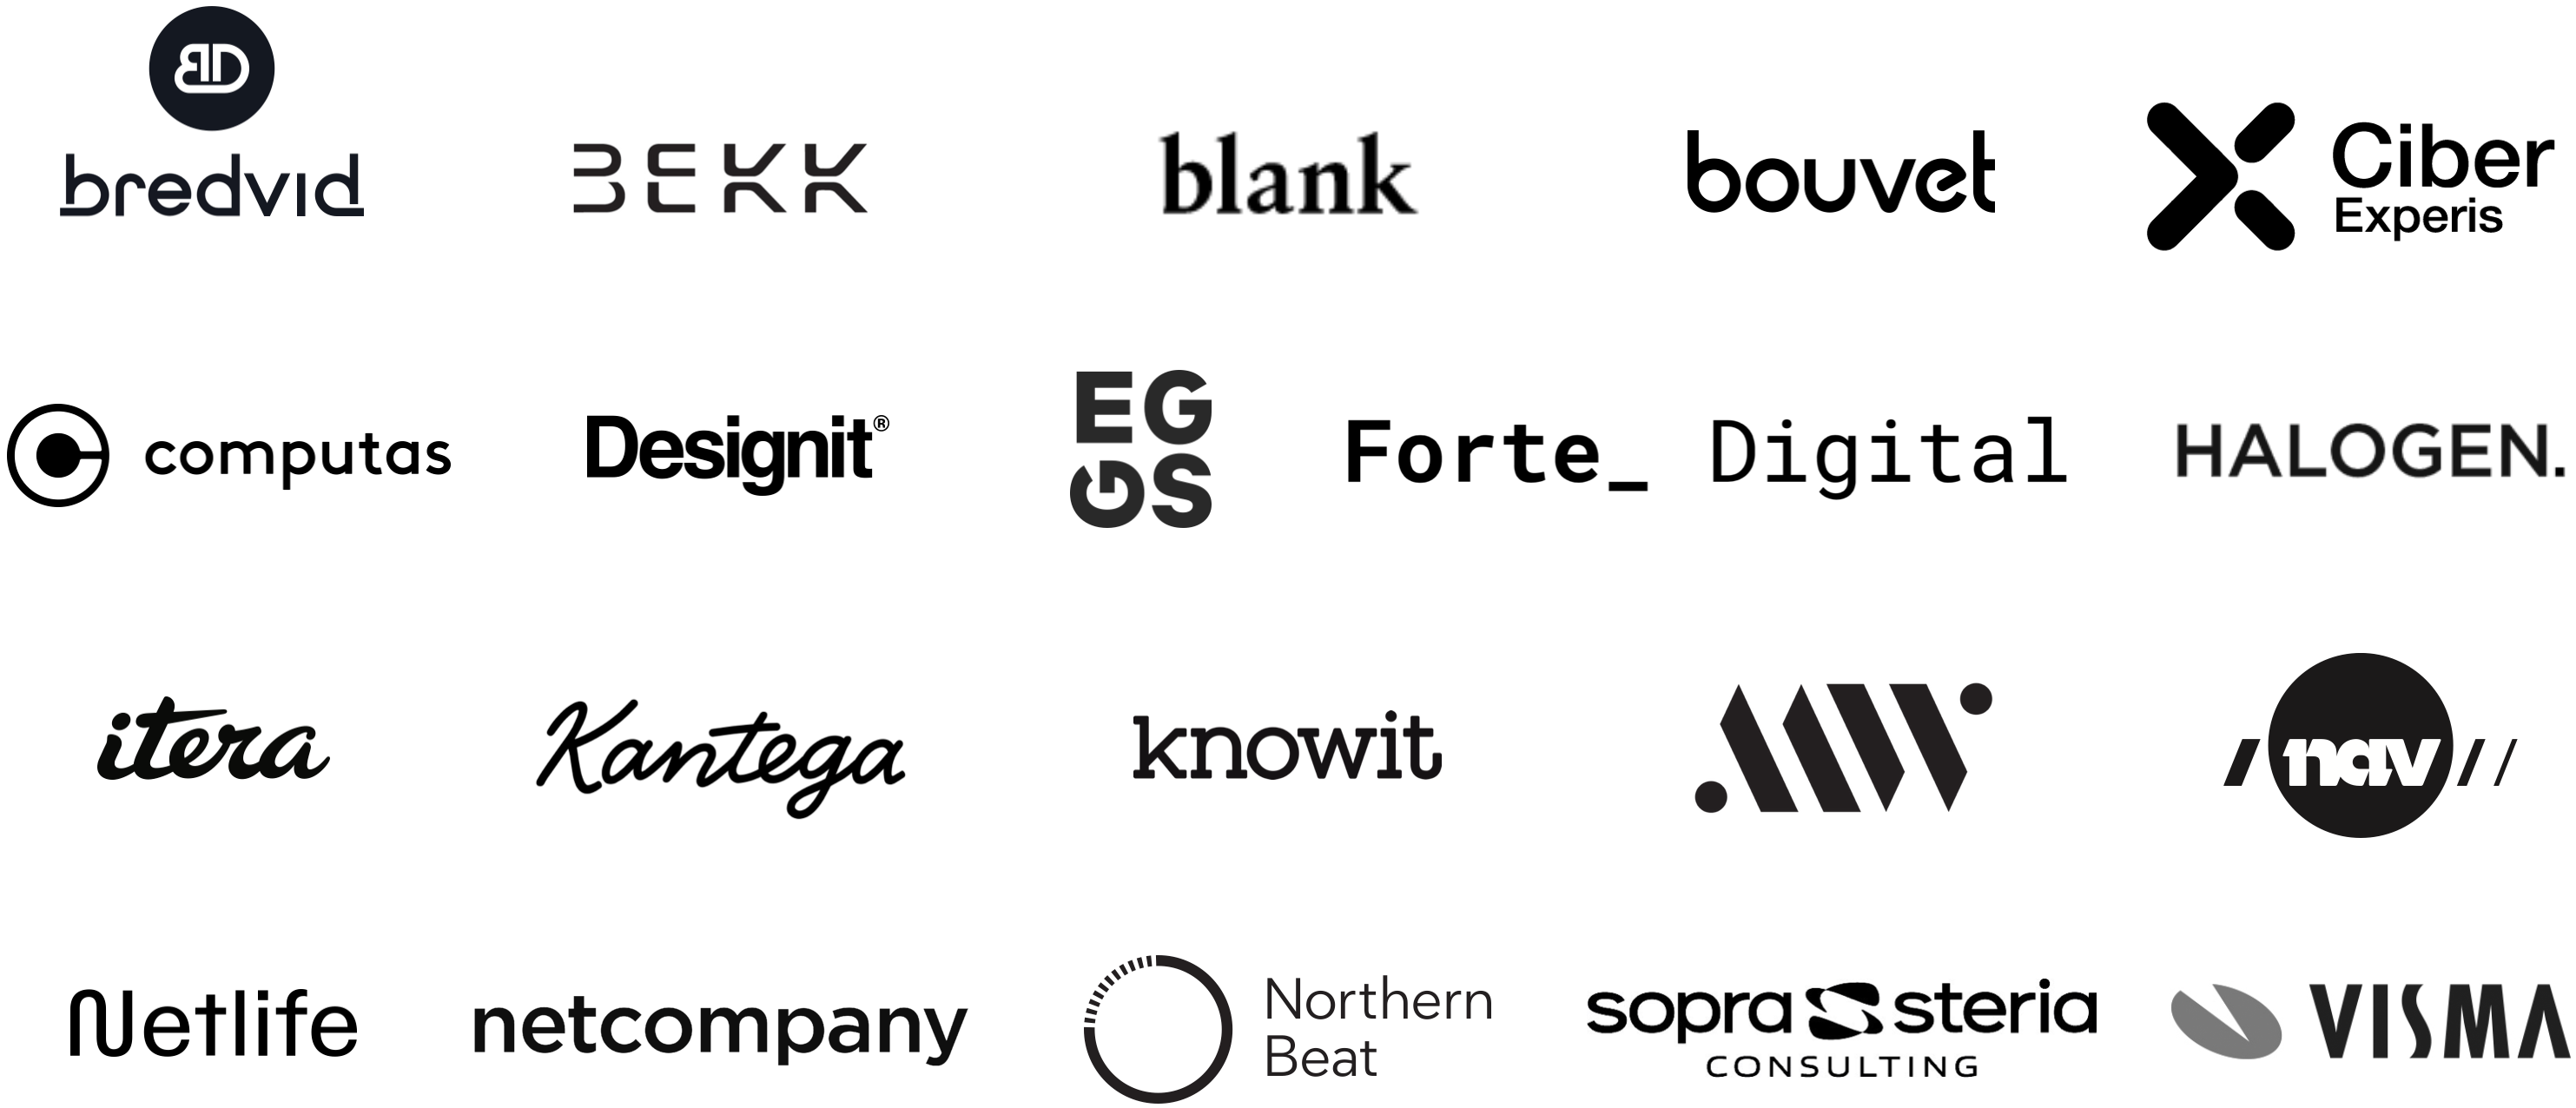 Image shows the logos of IxDA Oslo's 20 sponsors